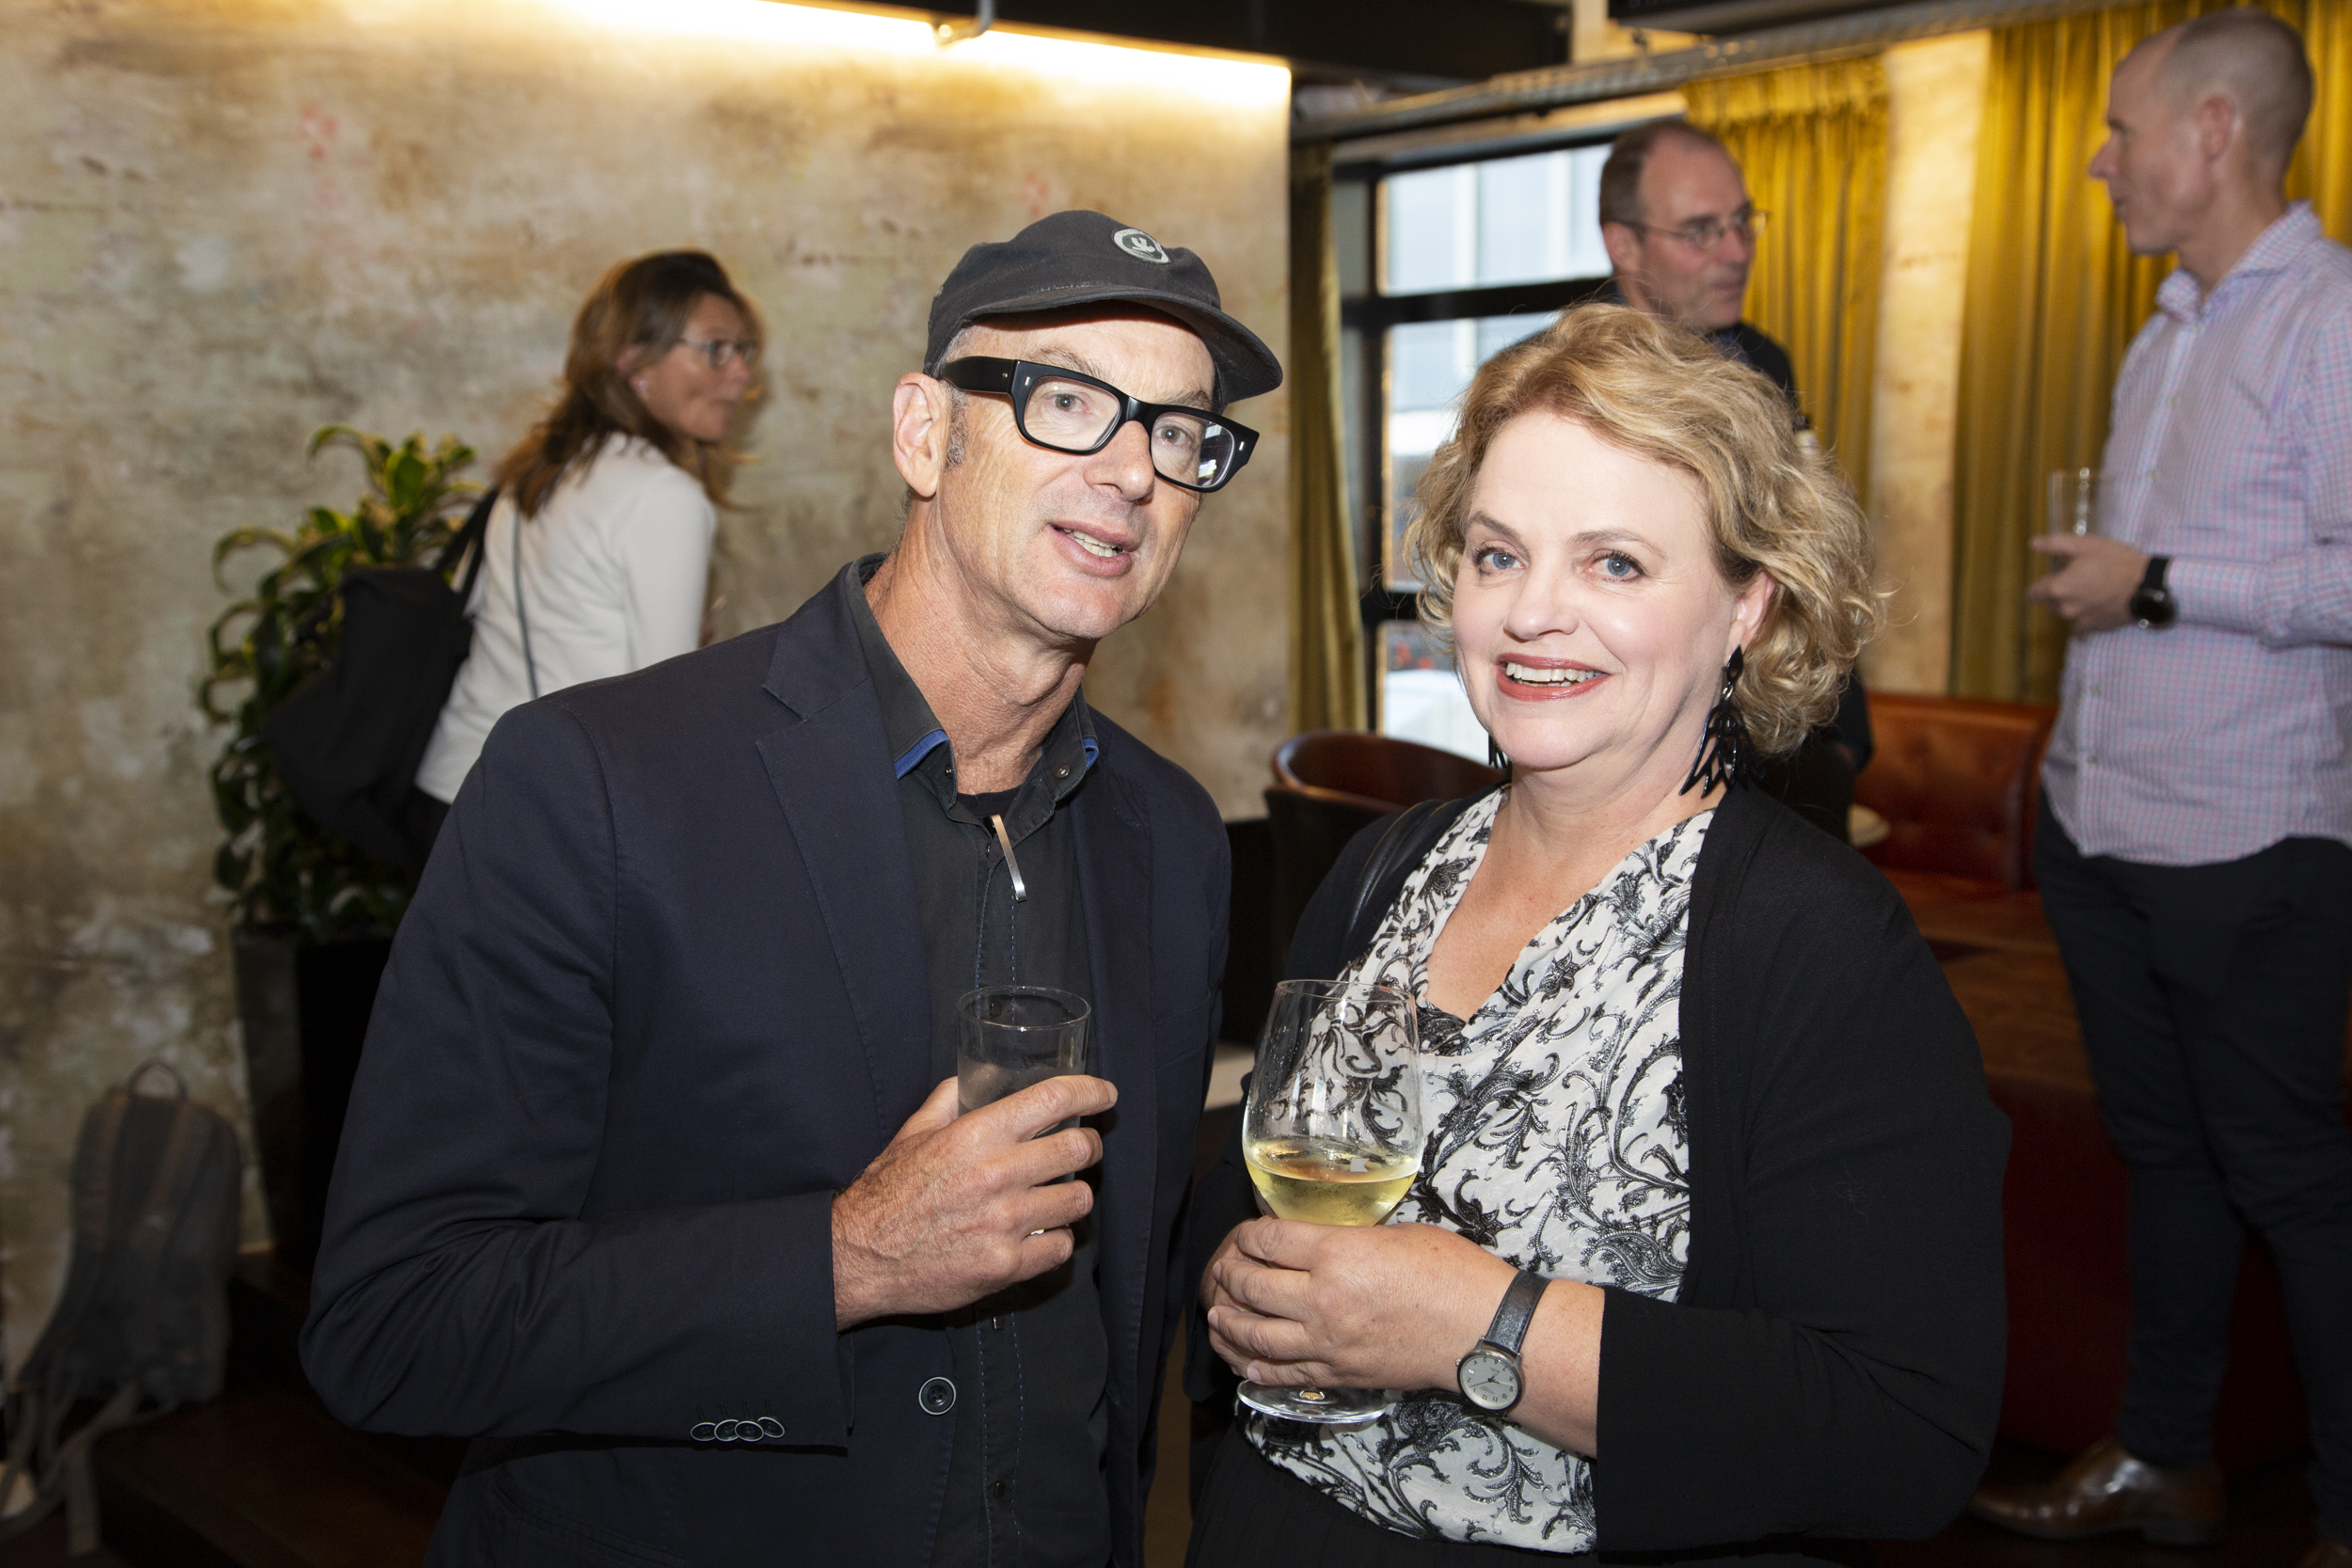 Dr Jacky Bowring with David Irwin from Isthmus at the NZILA President's cocktail evening earlier this year.